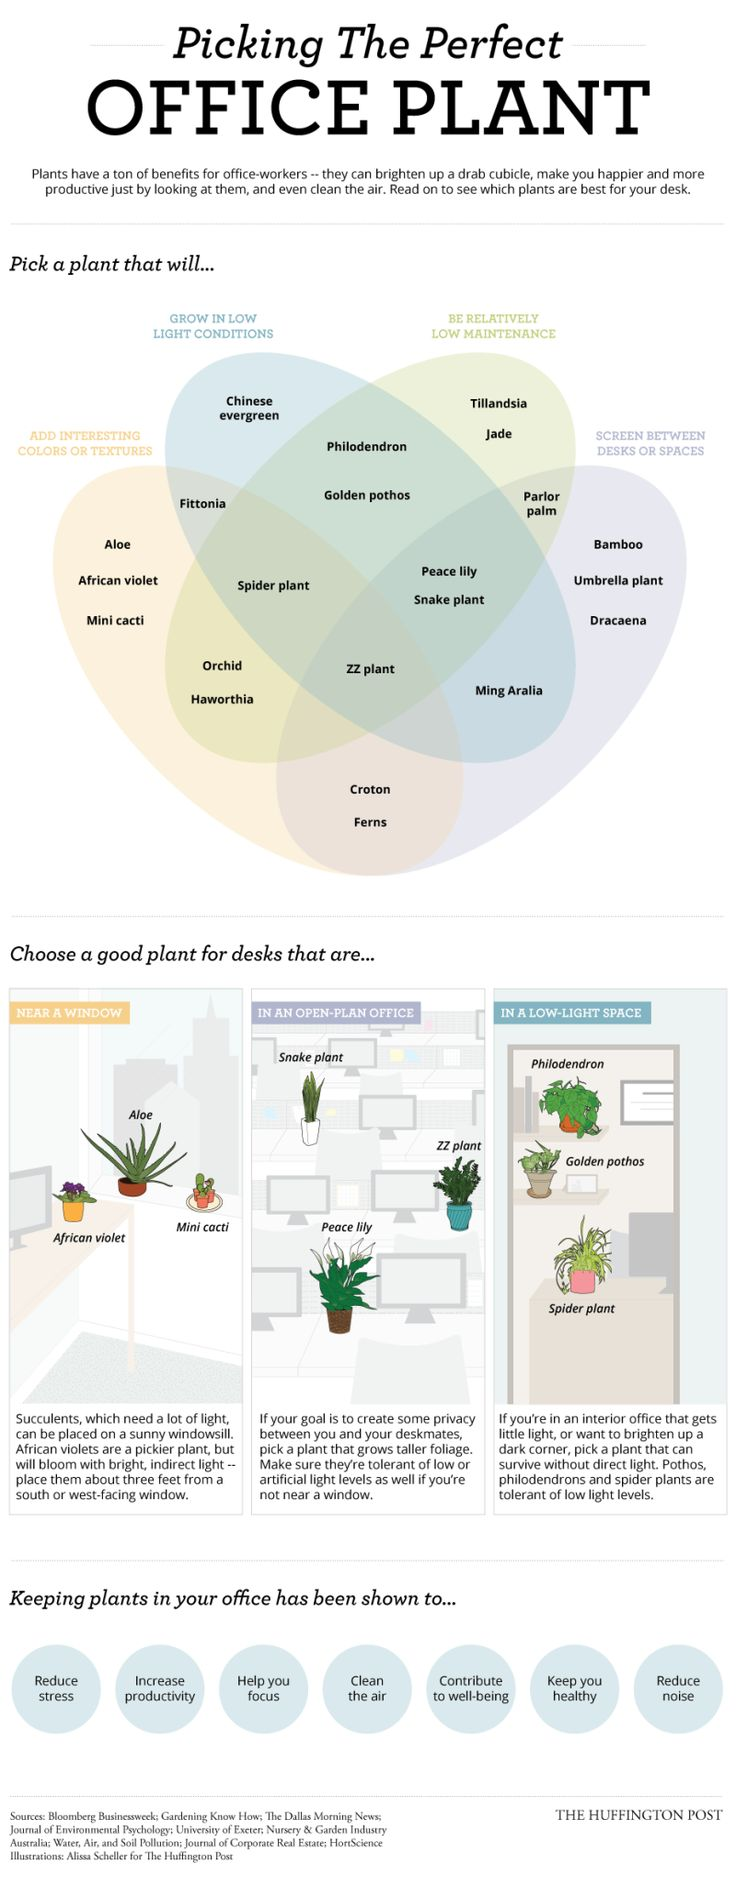 Captivating Pick The Right Office Plant For Your Environment With This Diagram